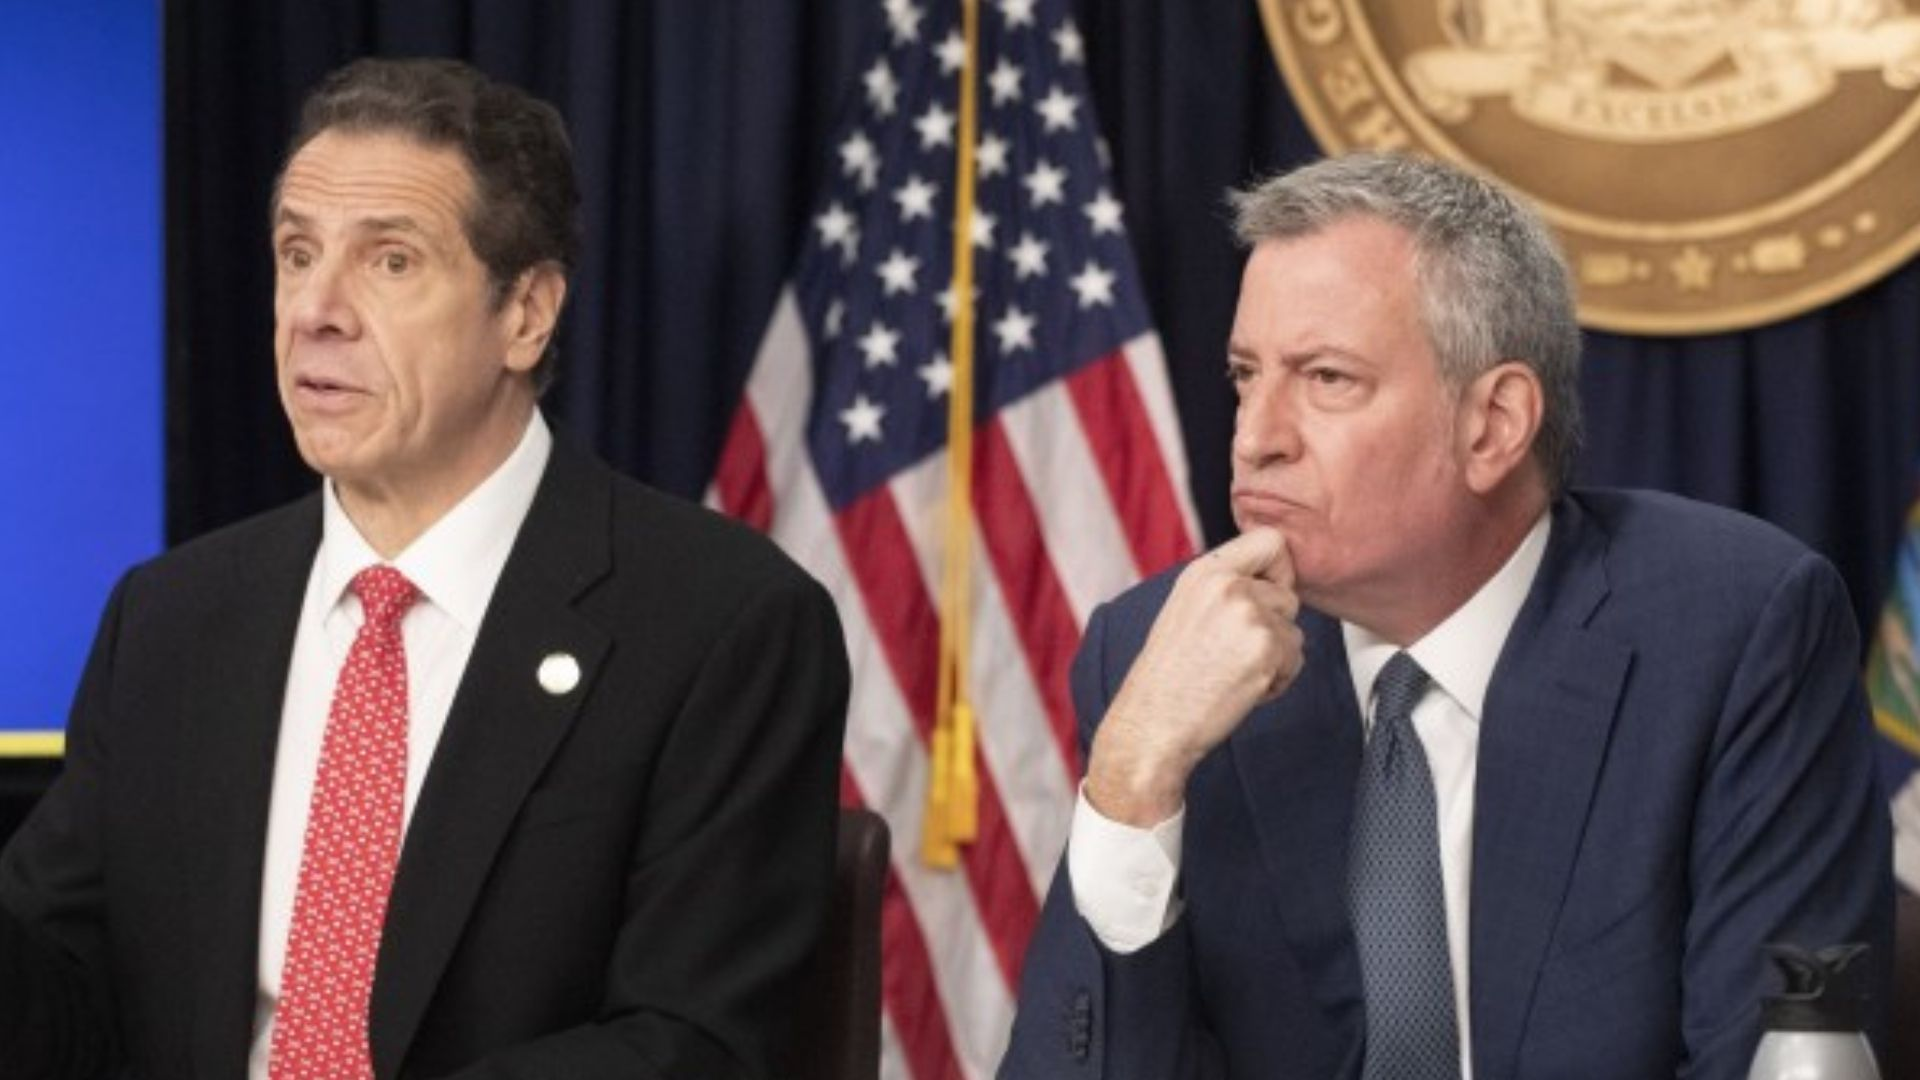 Gov. Cuomo and Mayor de Blasio